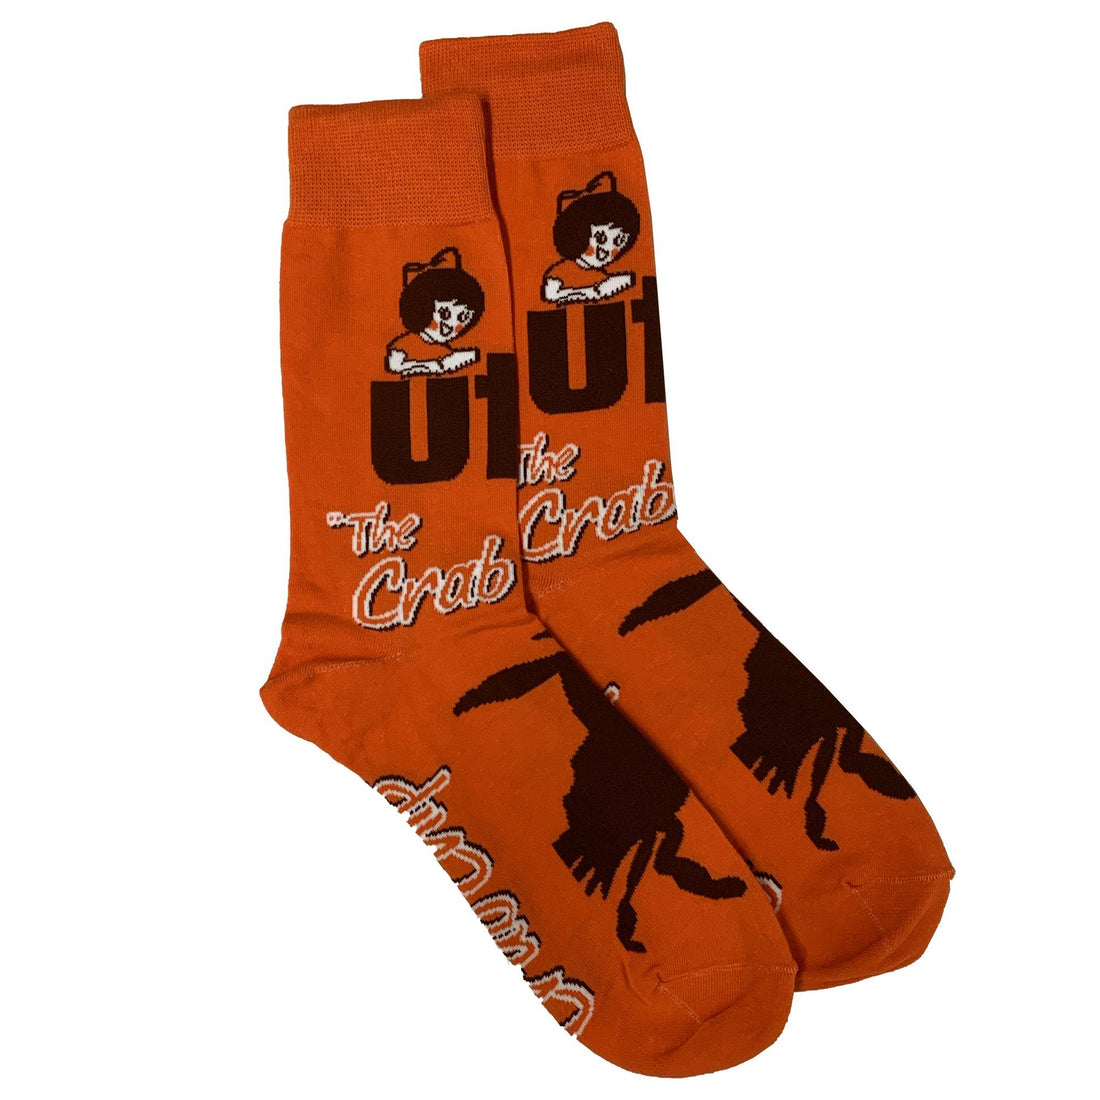 Utz Crab Chip Socks Gear And Novelties Utz Adult